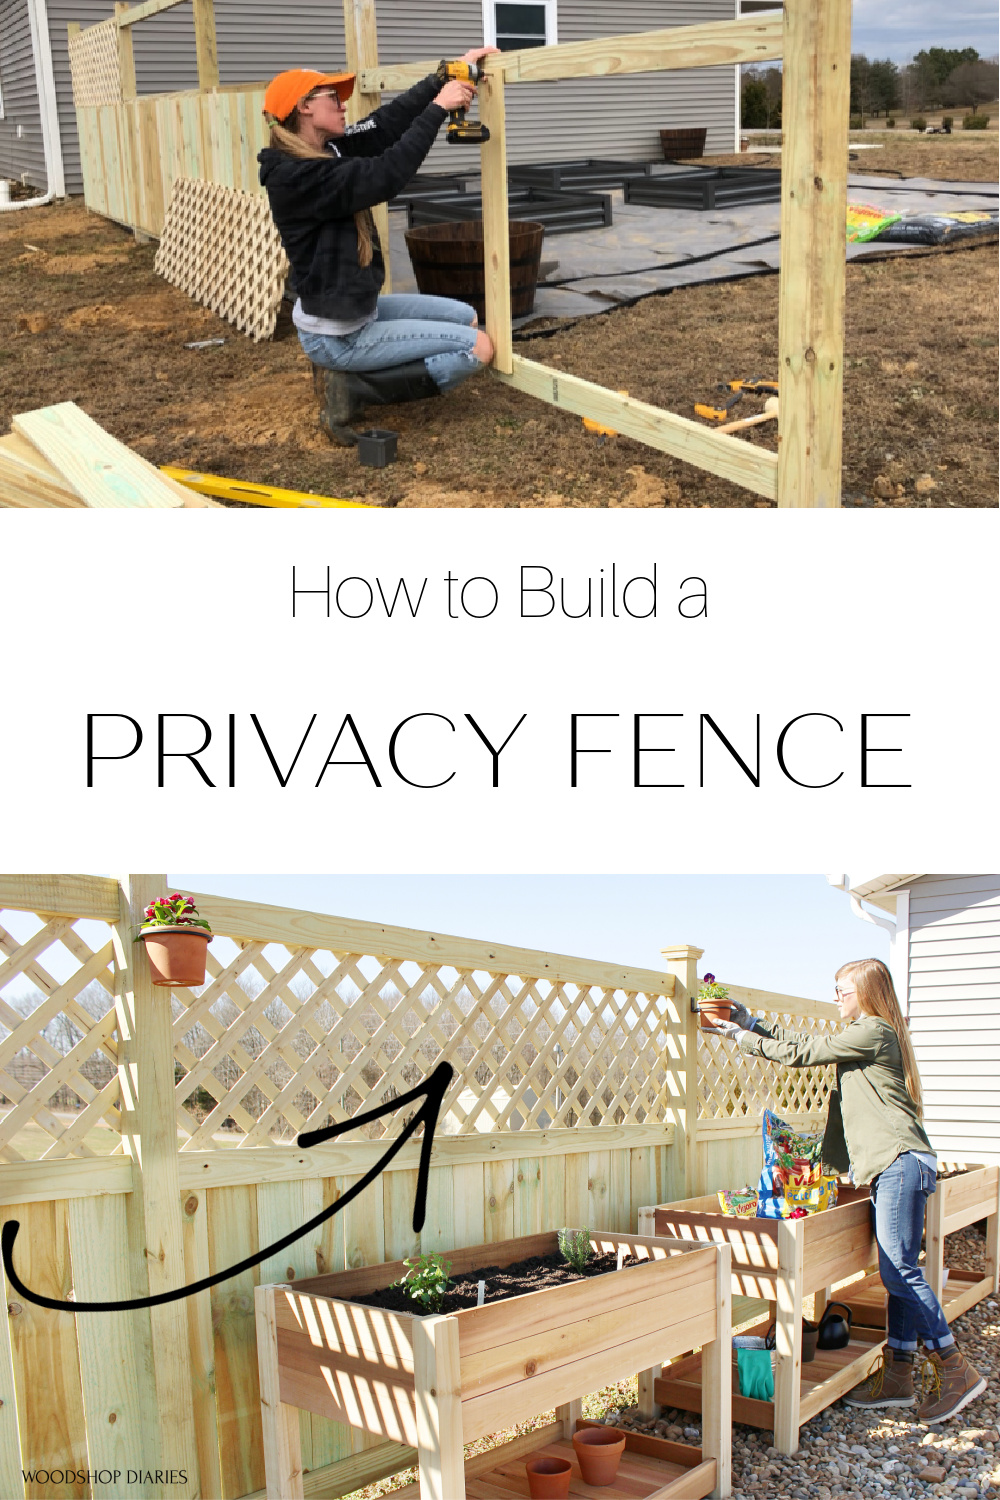 Pinterest collage building a privacy fence in process and after